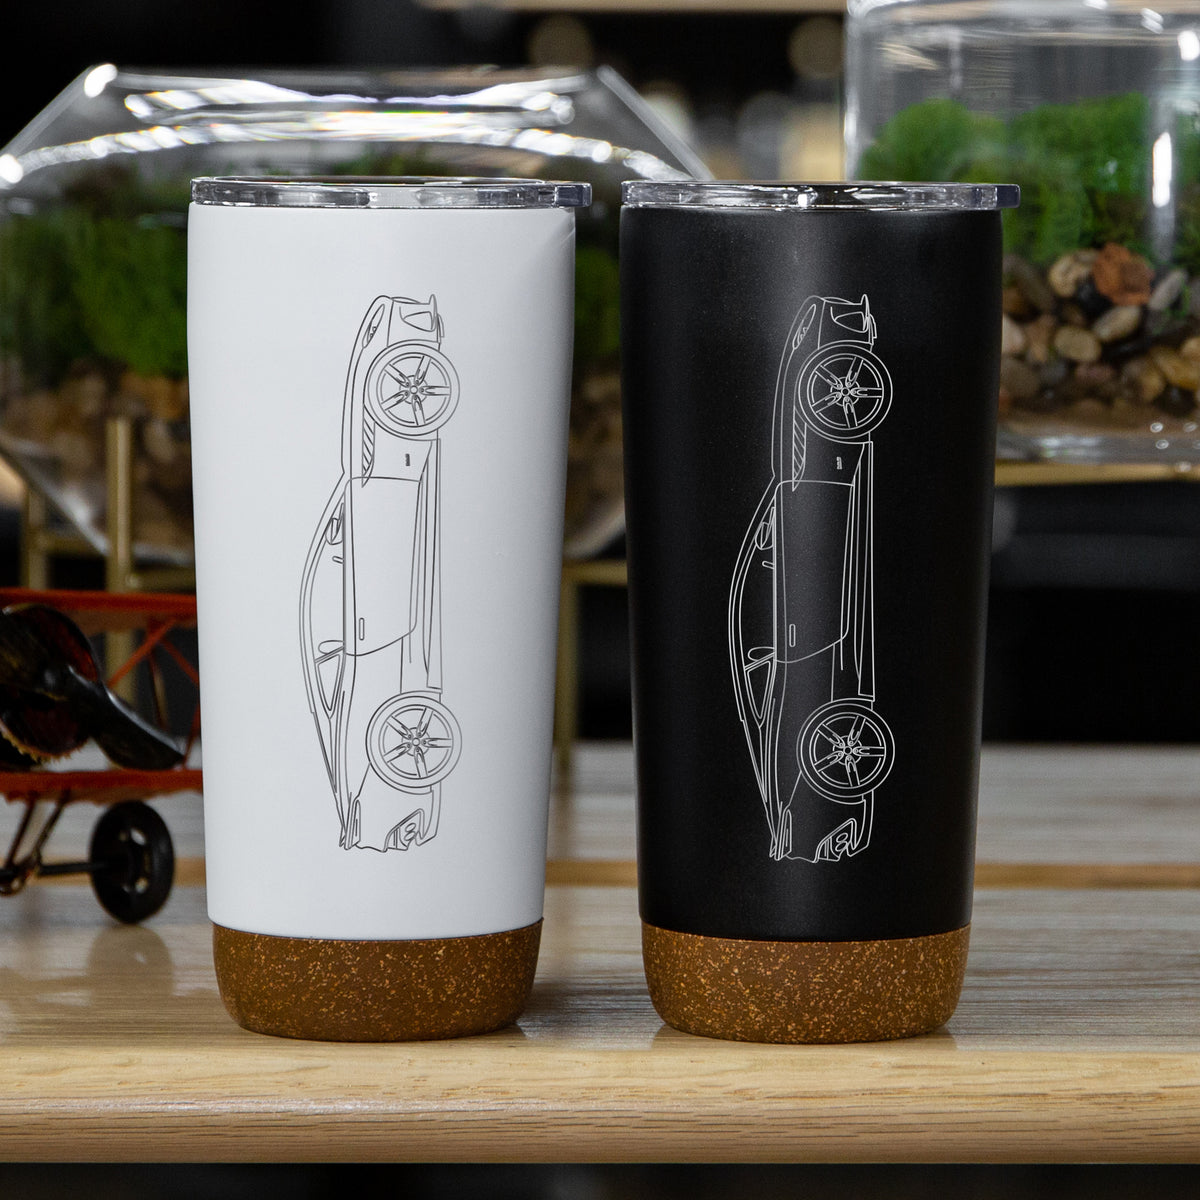 Aston Martin DBS Insulated Stainless Steel Coffee Tumbler - 20 oz